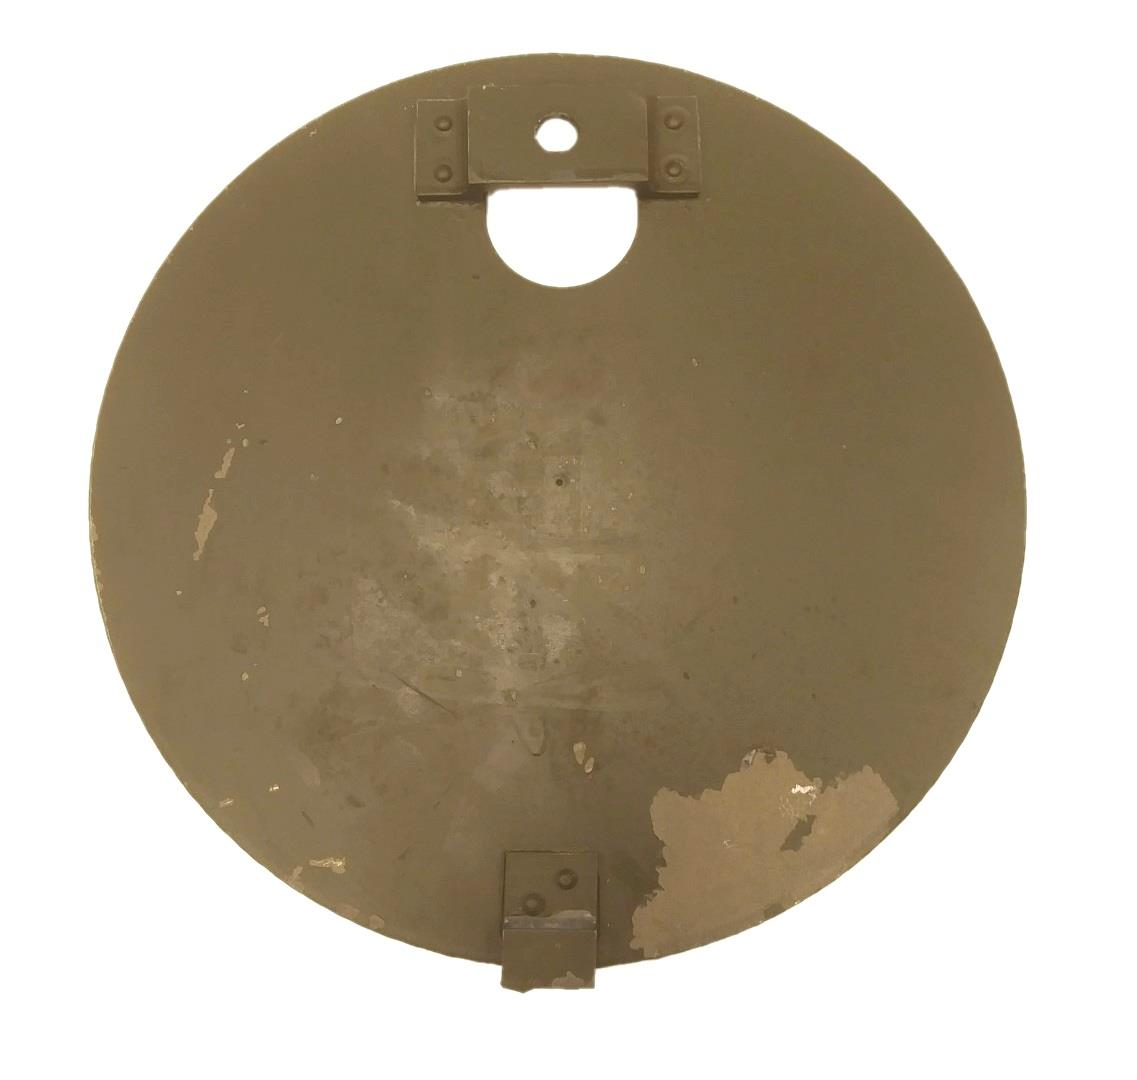 MU-168 | MU-168 Rifle Mount Opening Cover Plate NOS (1) (Large).jpg